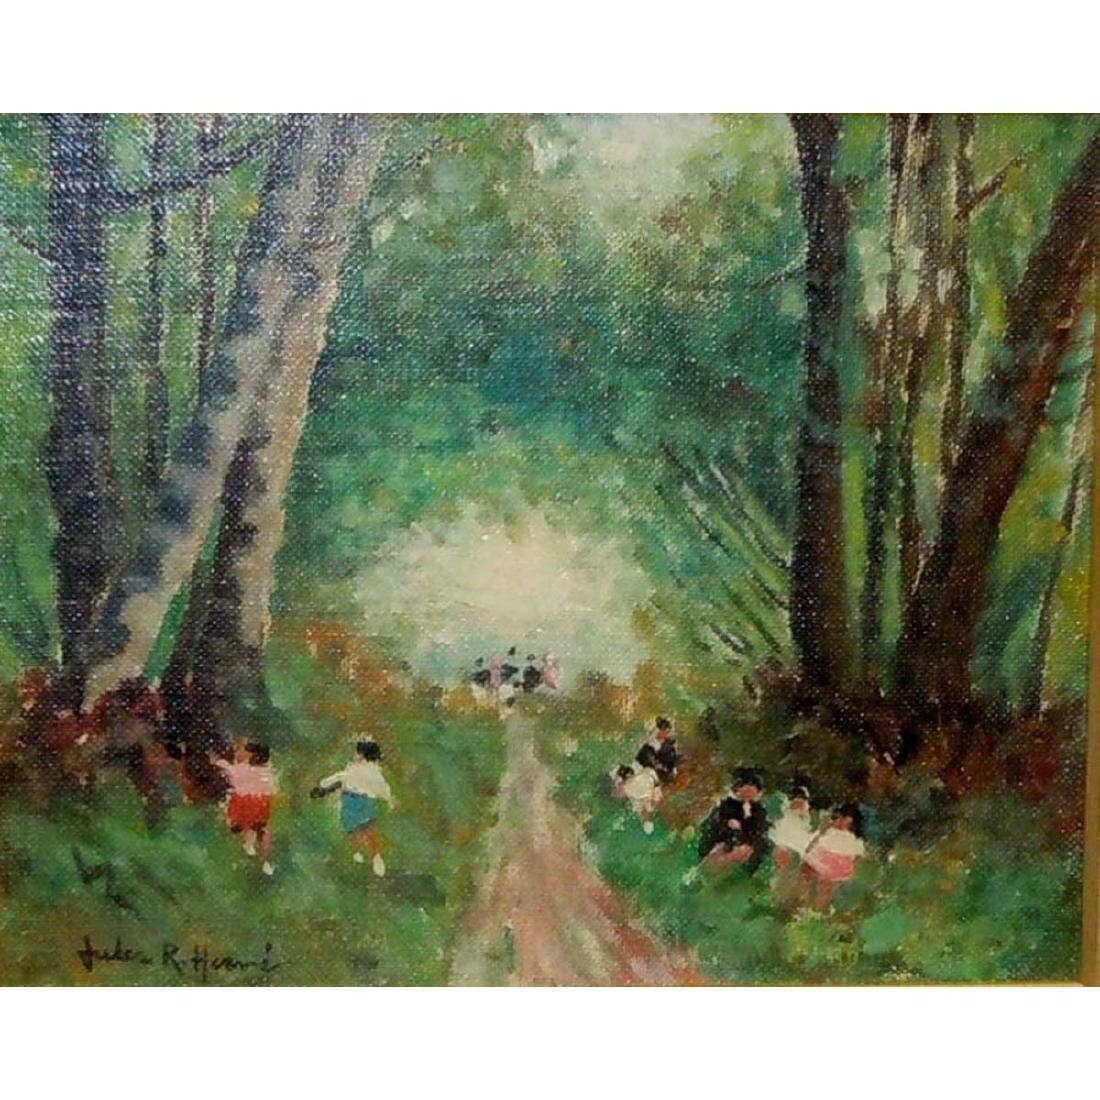 JULES RENE HERVE CHILDREN PLAYING IN WOODS OIL - 2